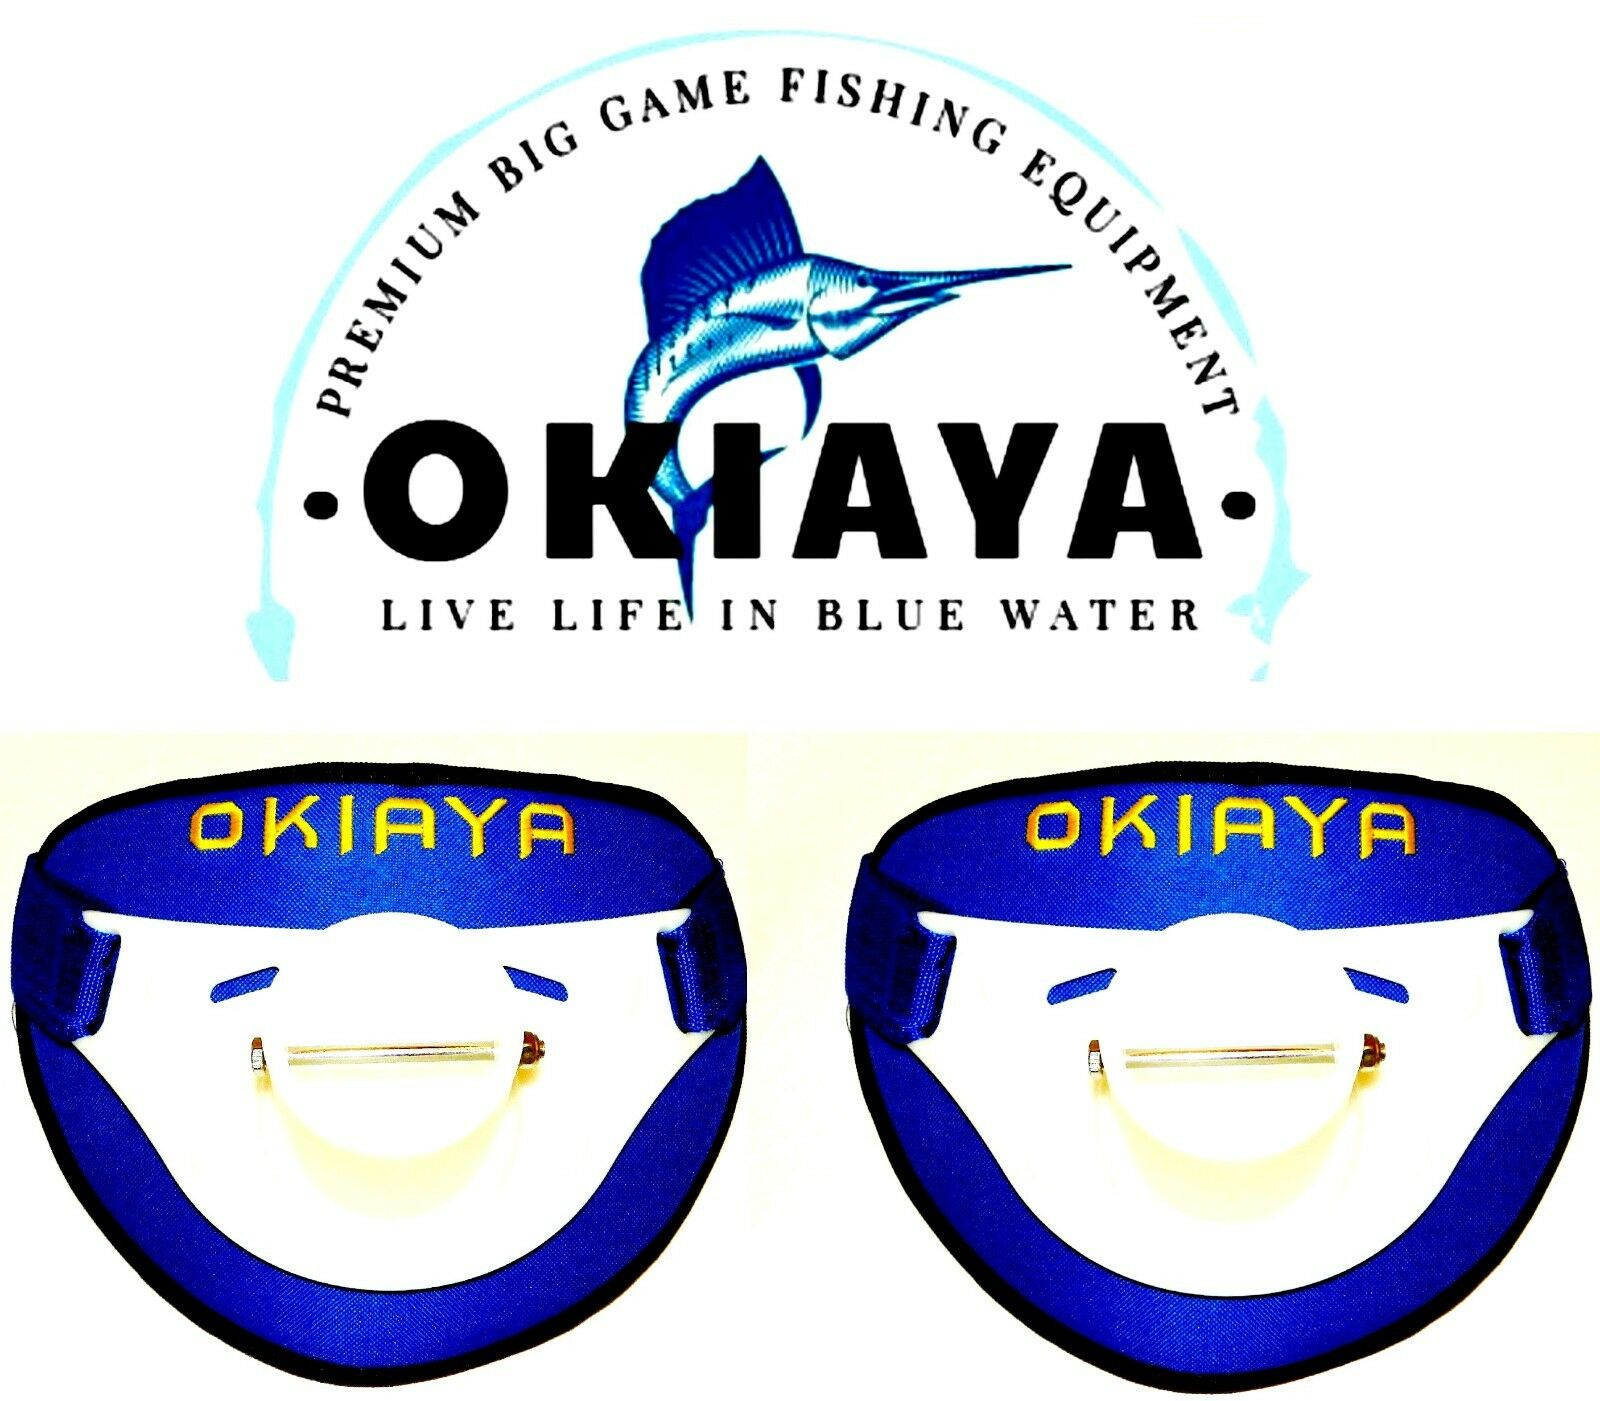 OKIAYA Big Game Fighting Belt 1 Size fits all (26in to 60in Waist) set of 2